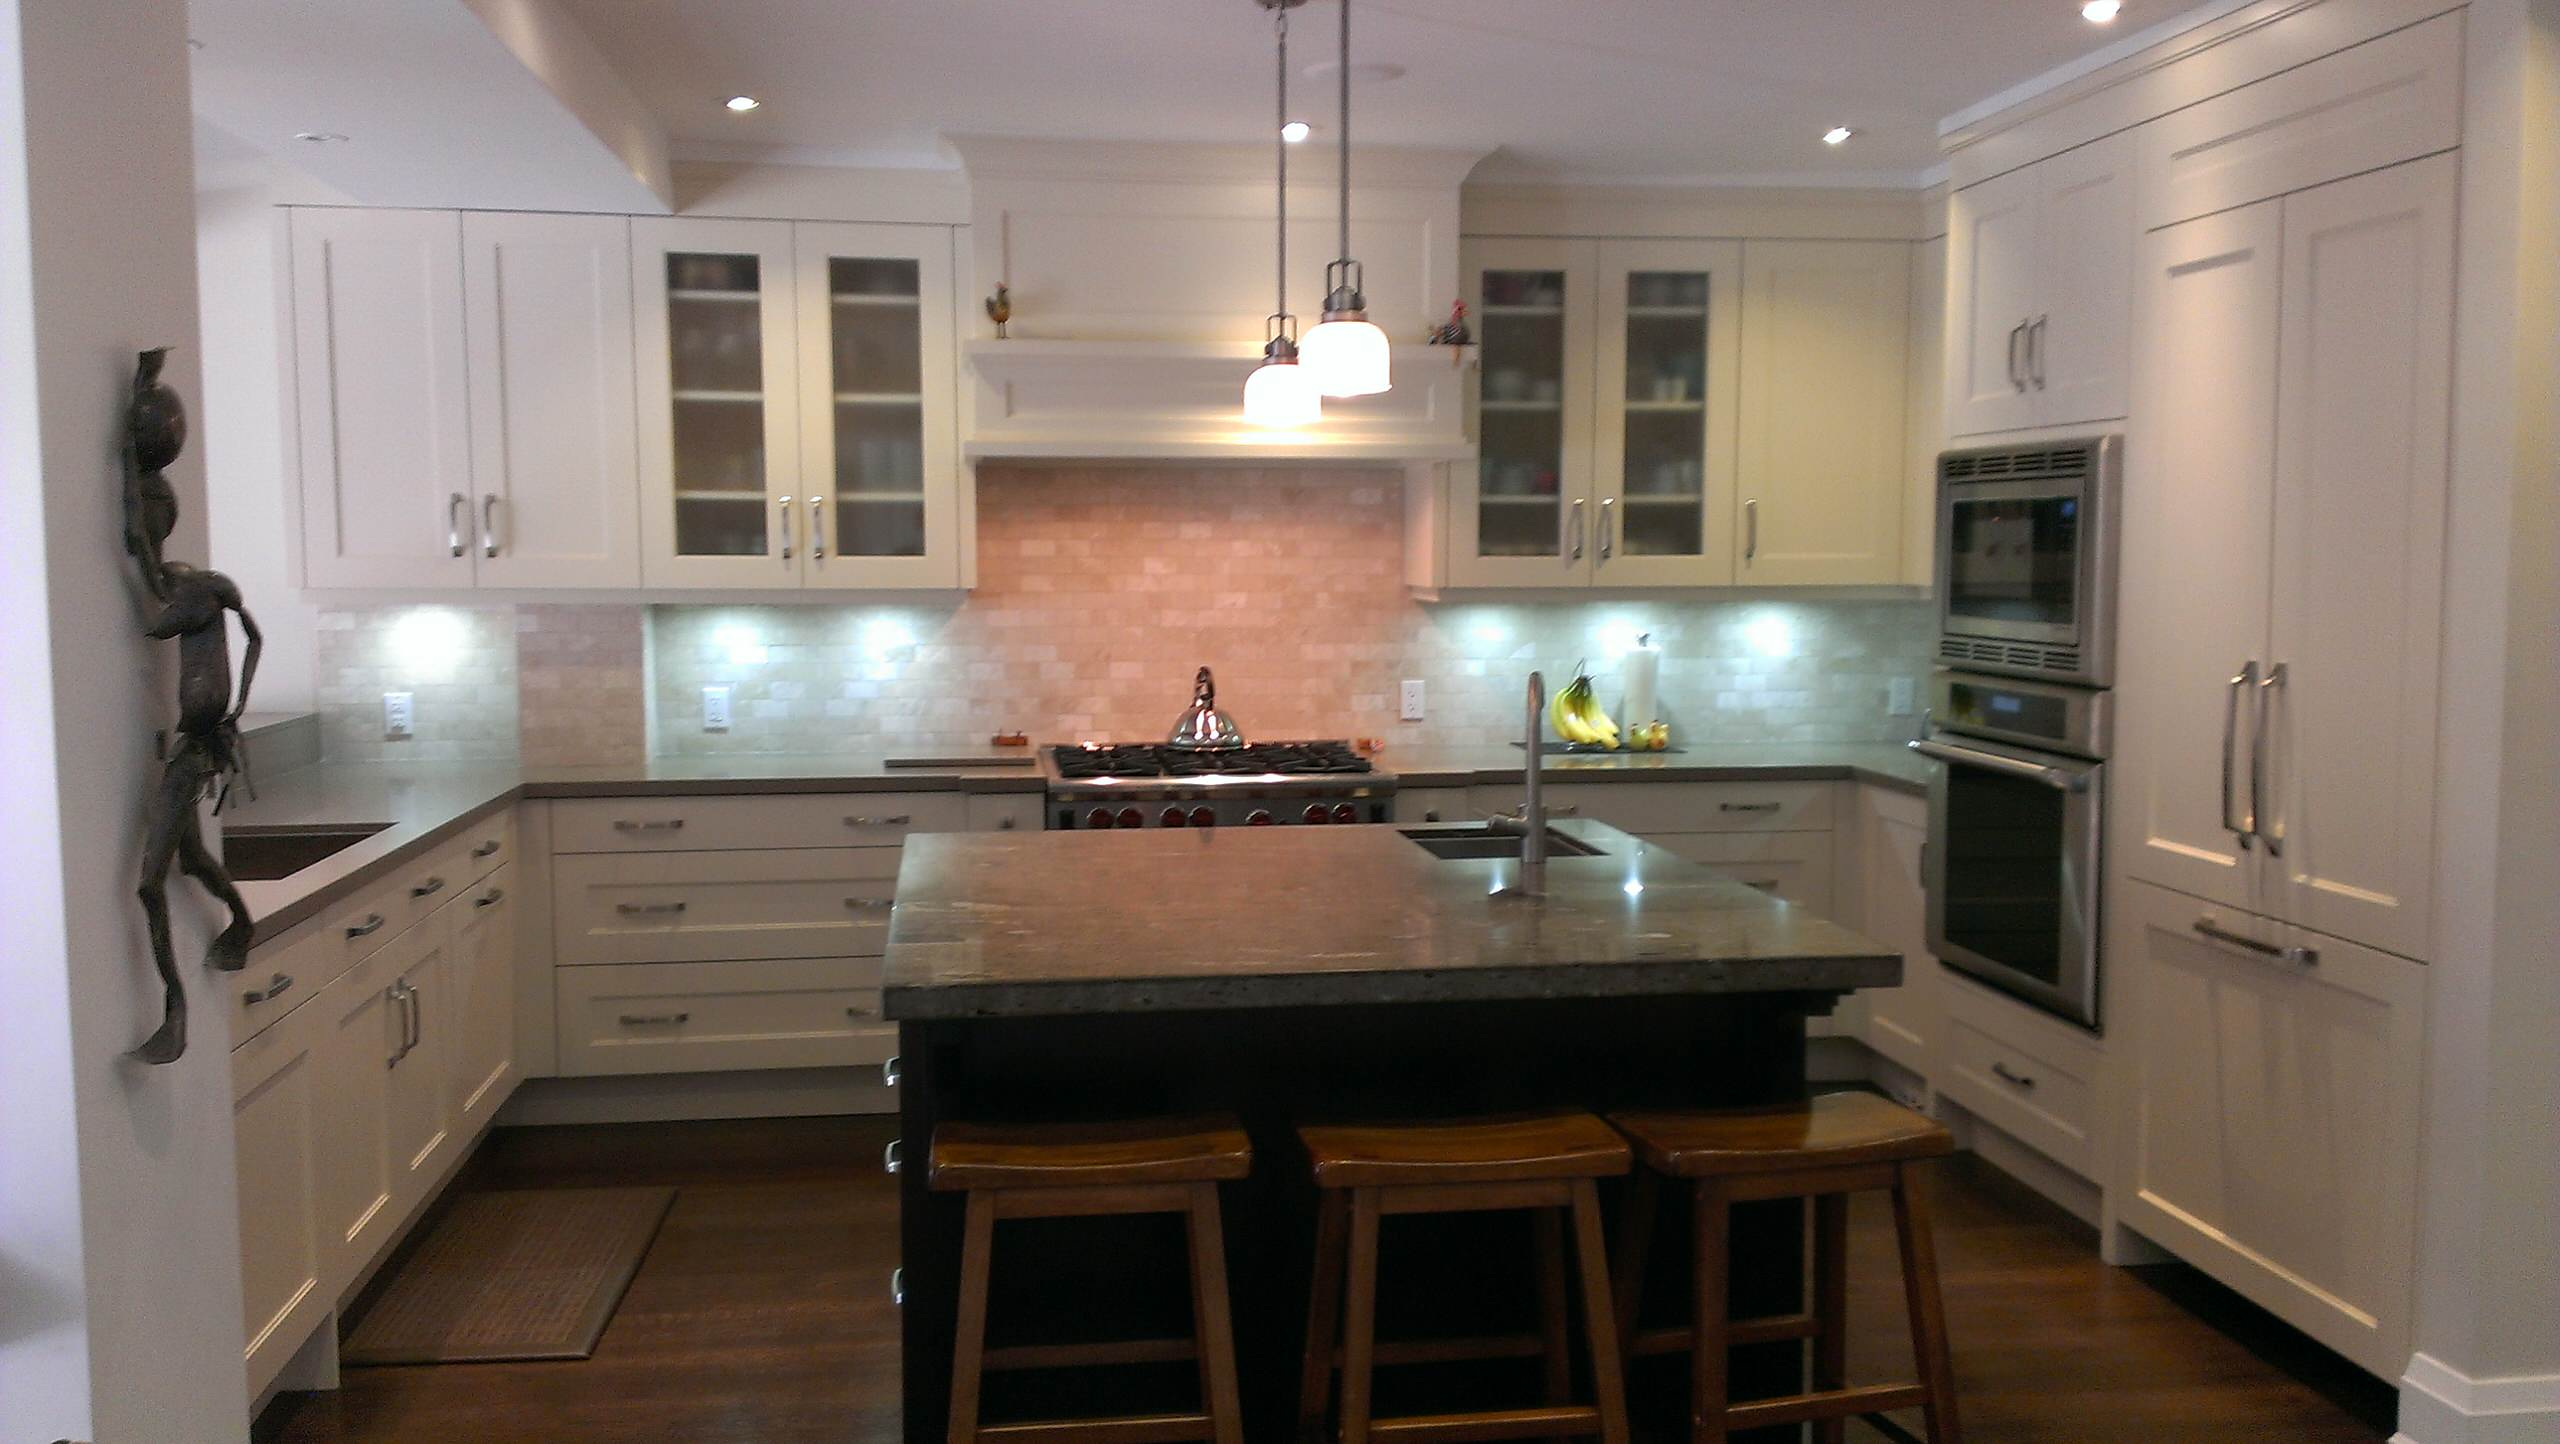 Total Transformation, shaker style, integrated fridge and dishwasher, center isl